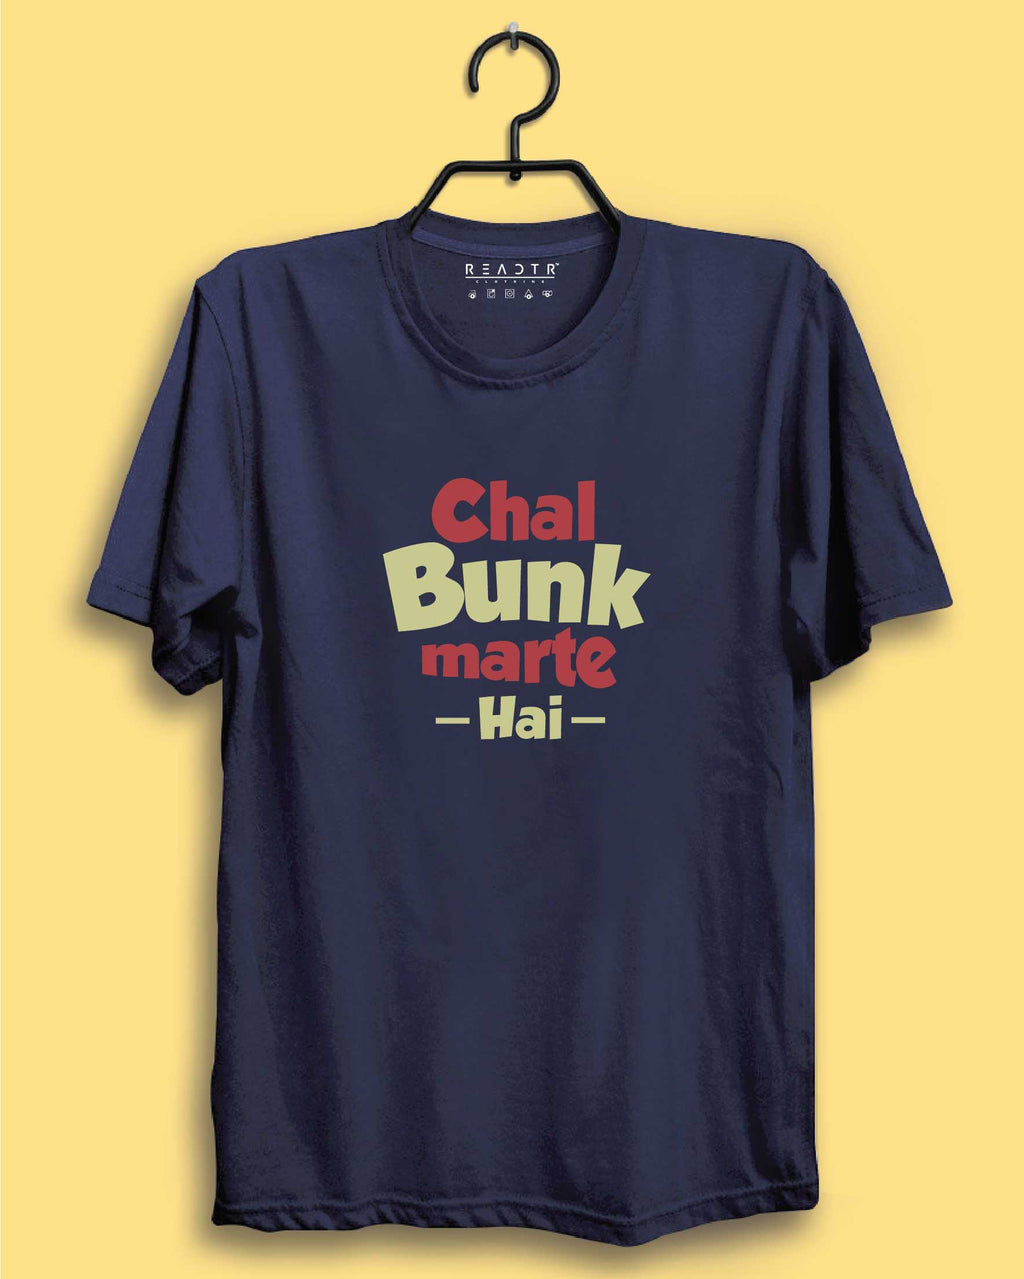 Chal Bunk Marte Hai Reactr Tshirts For Men - Eyewearlabs